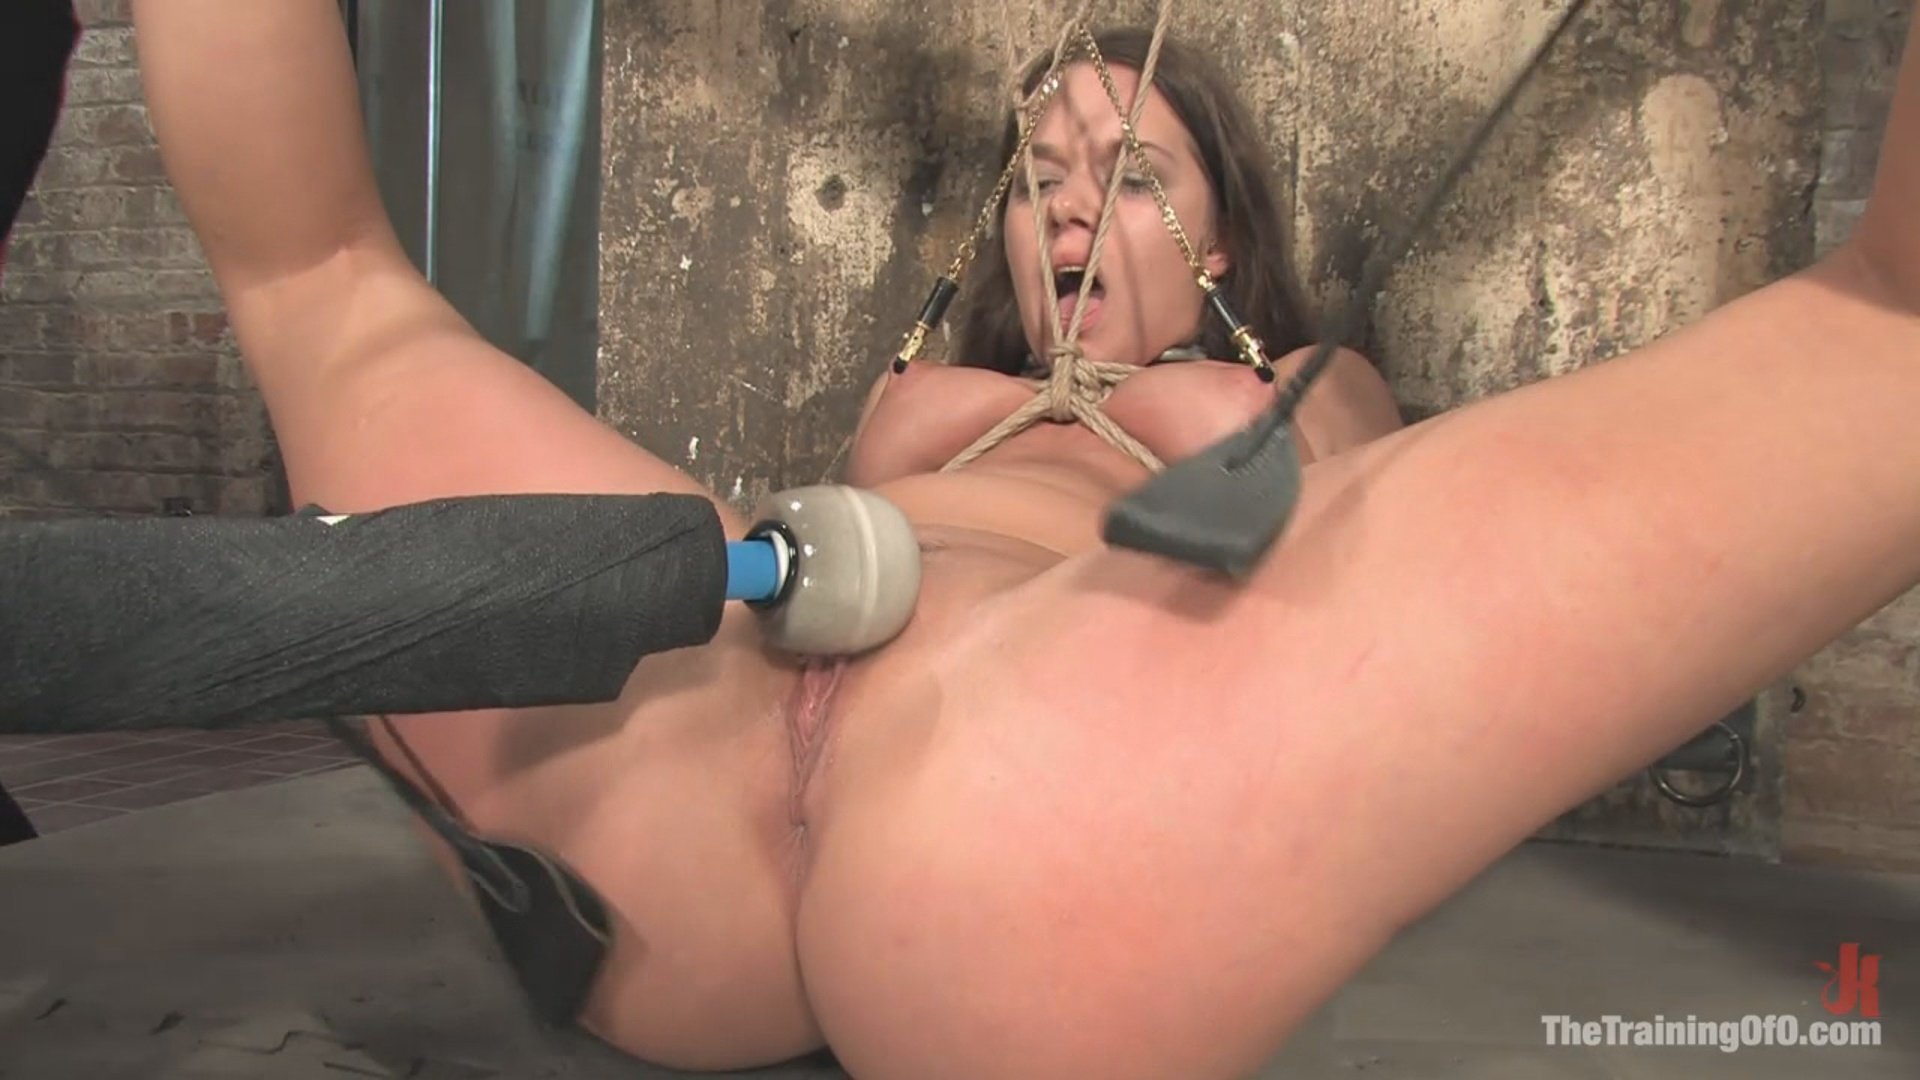 The Training Of O: The Training Of Devaun, Day Two xvideos